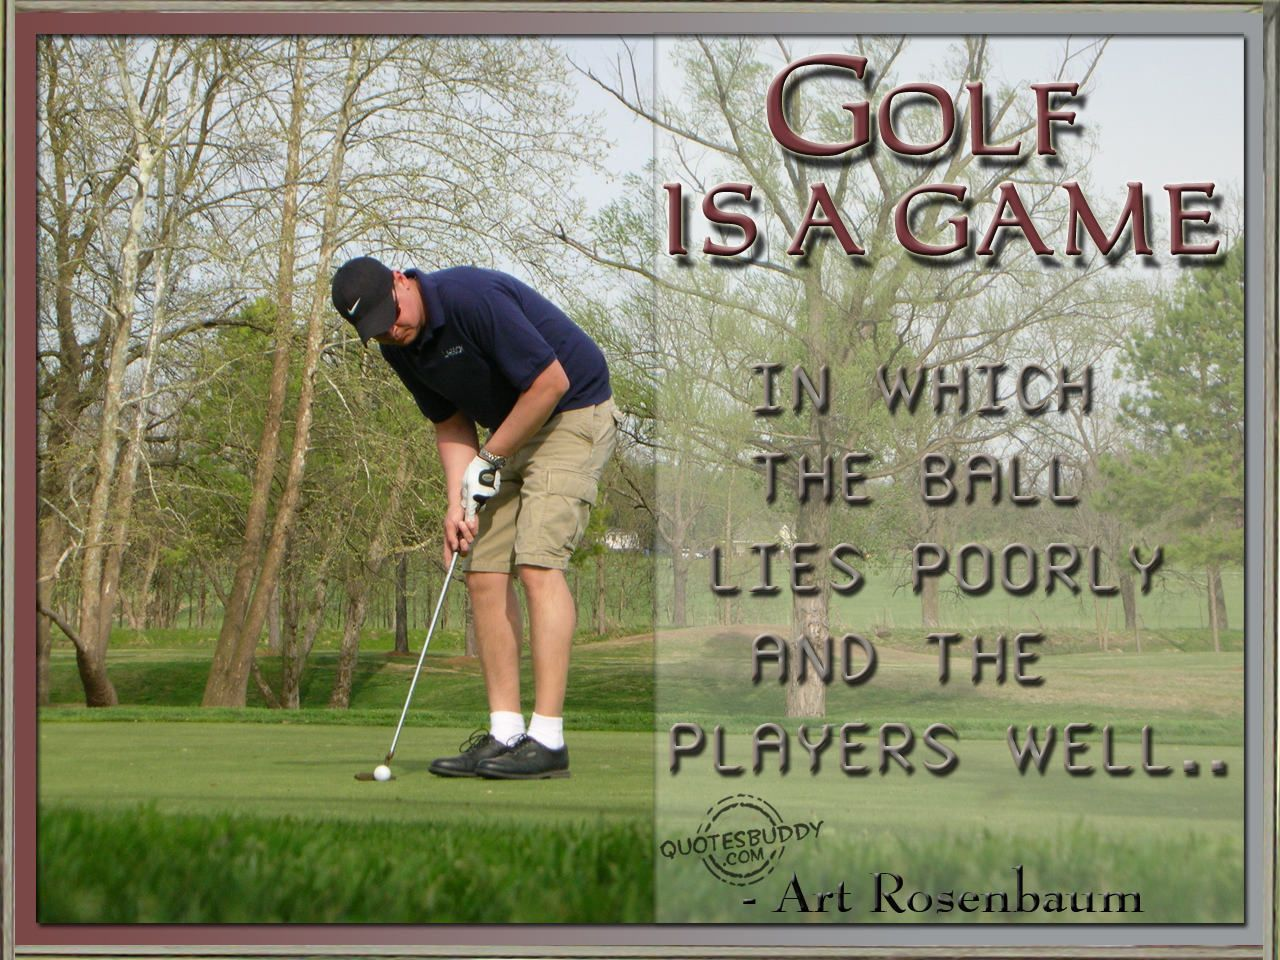 Golf Quotes Interesting Golfquotes  Golf Is A Game In Which The Ball Lies Poorly . Inspiration Design